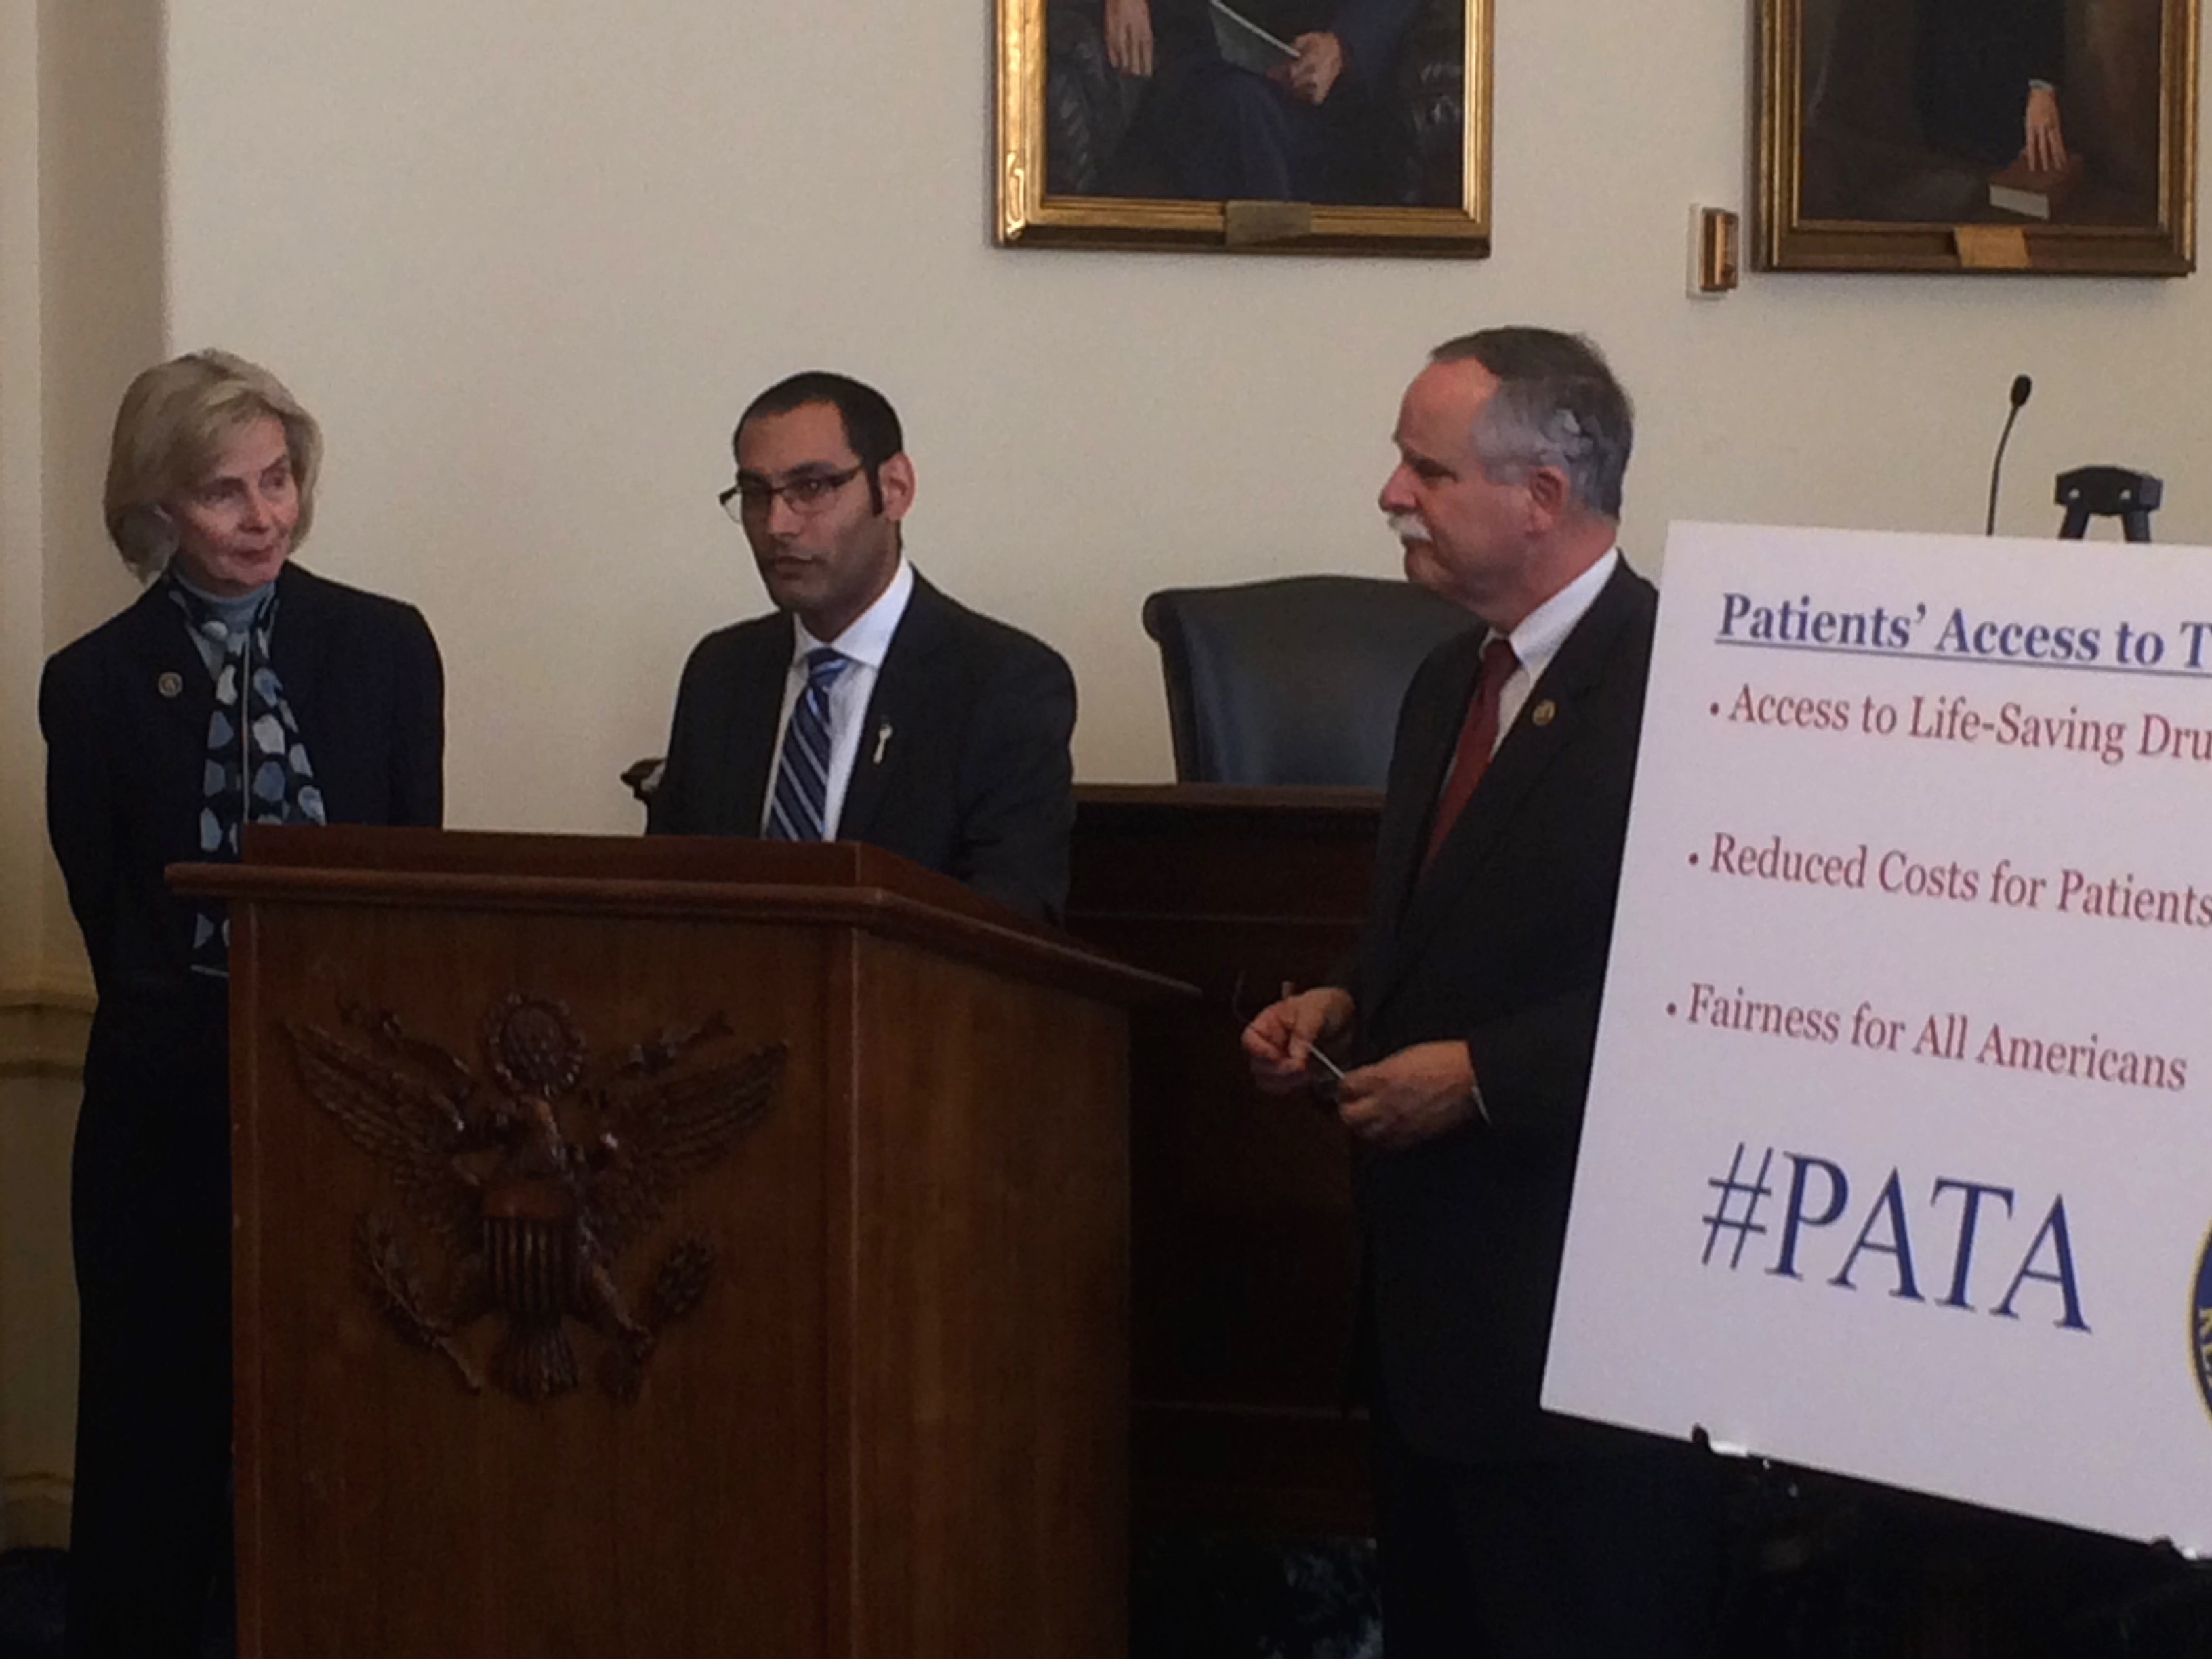 Patients Access to Treatments Act